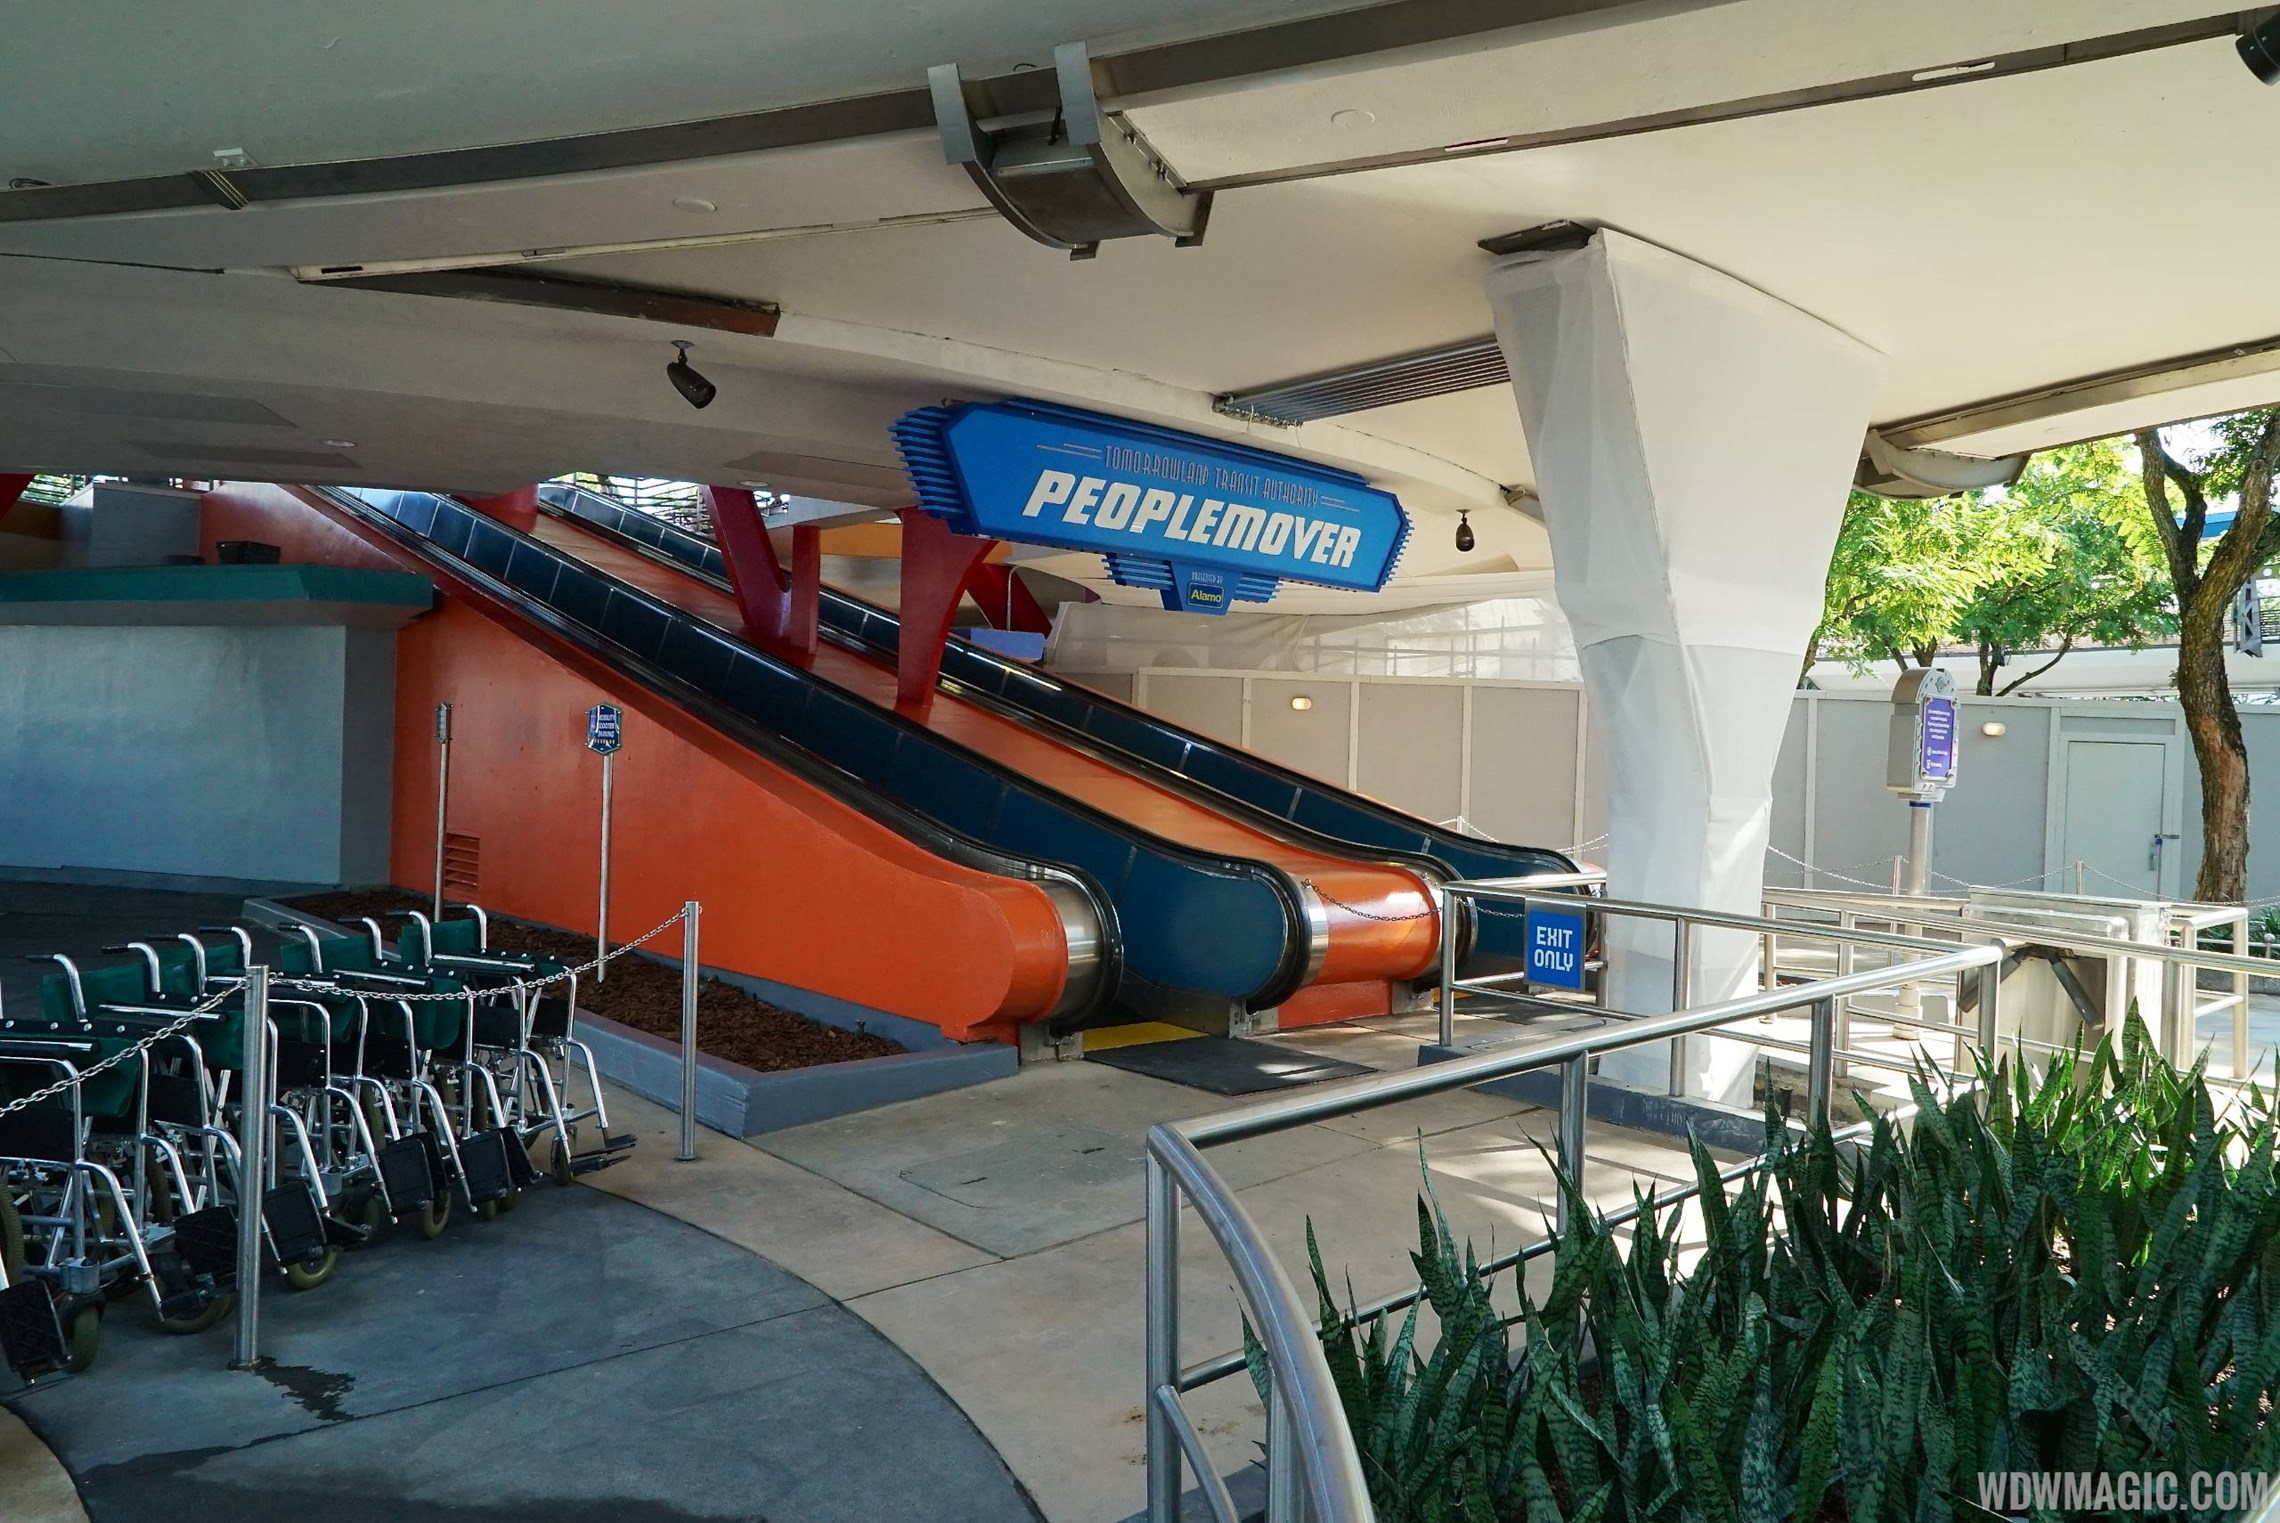 Tomorrowland Transit Authority PeopleMover new color scheme